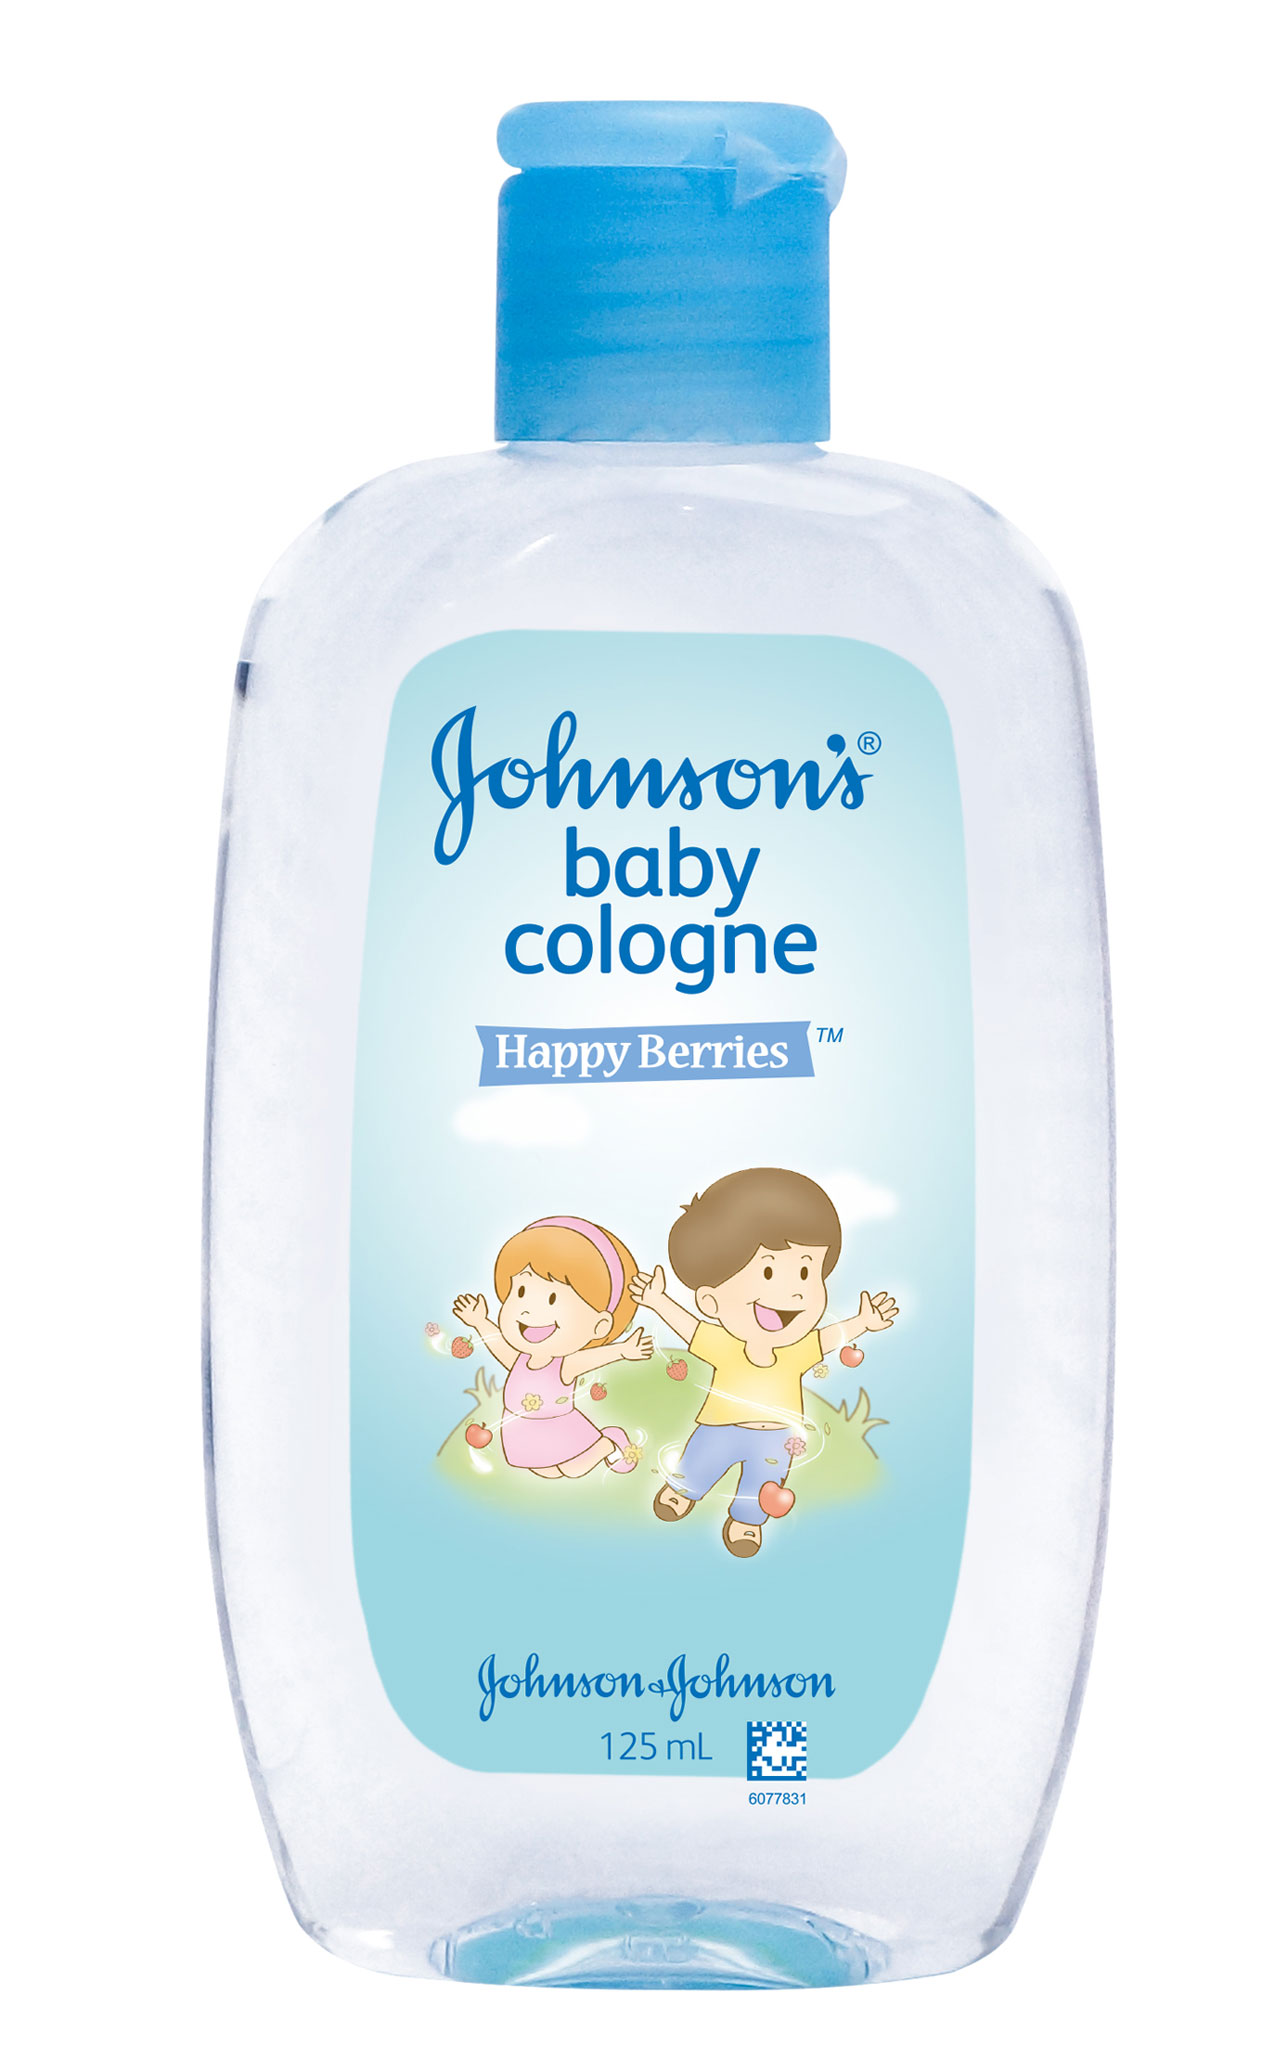 Johnsons Baby Cologne Happy Berries Johnsons Baby